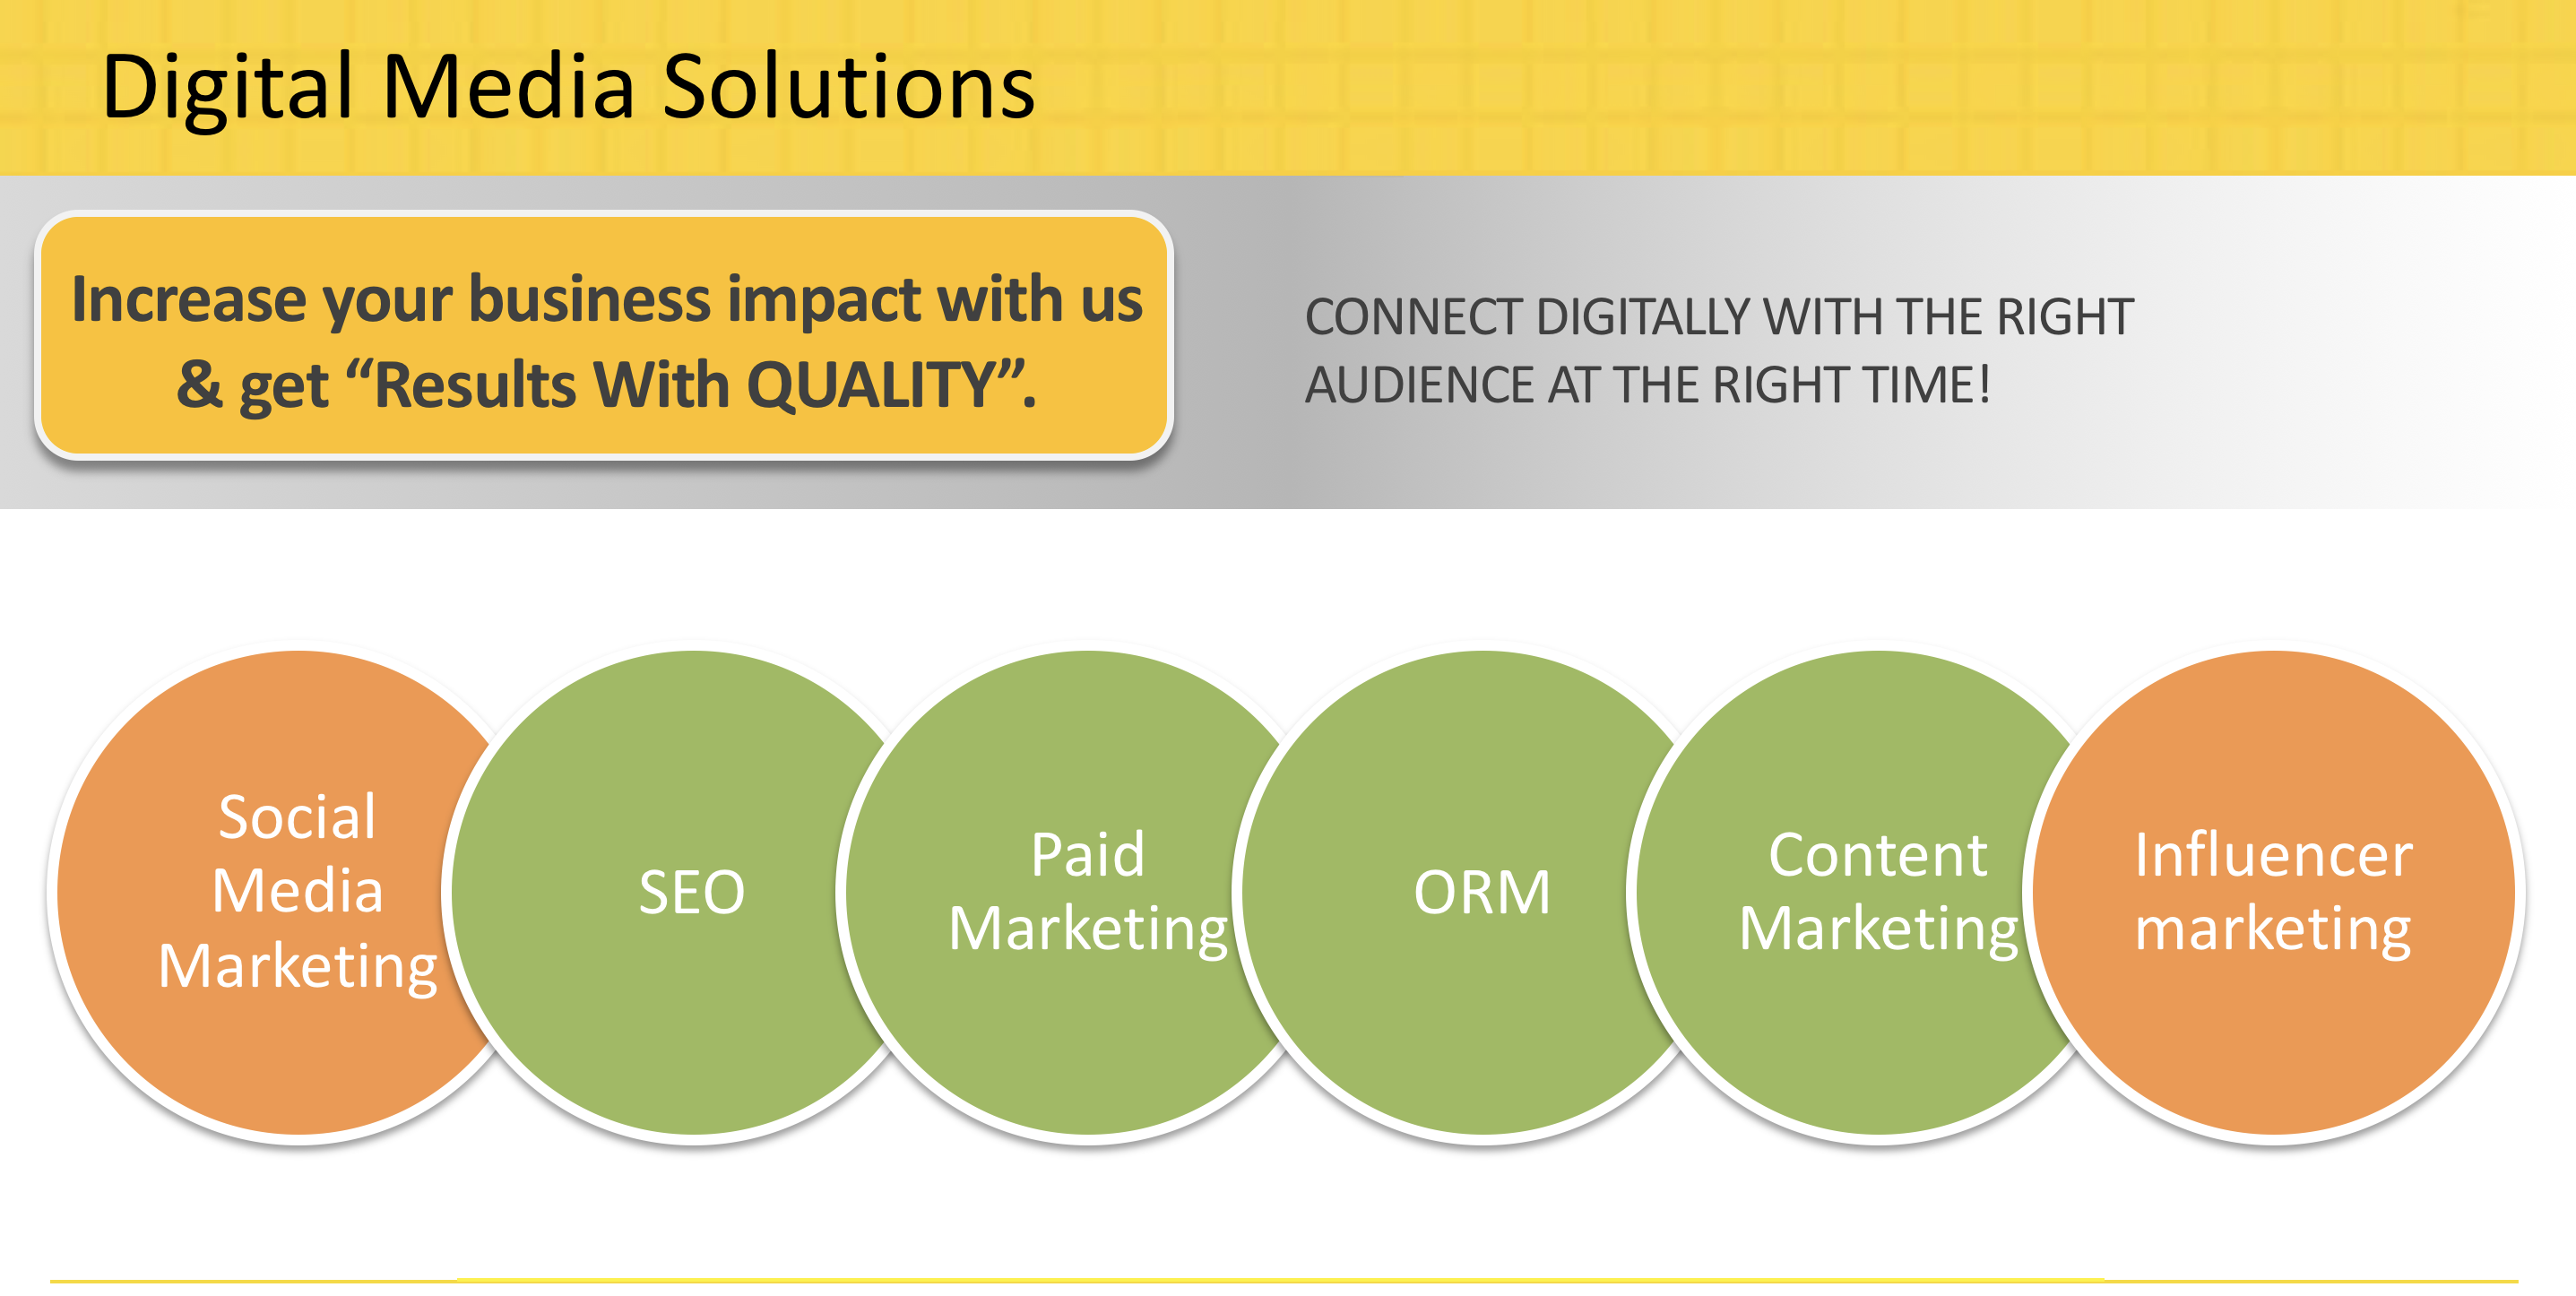 Lead Generation,  Sales with Digital Marketing Solutions